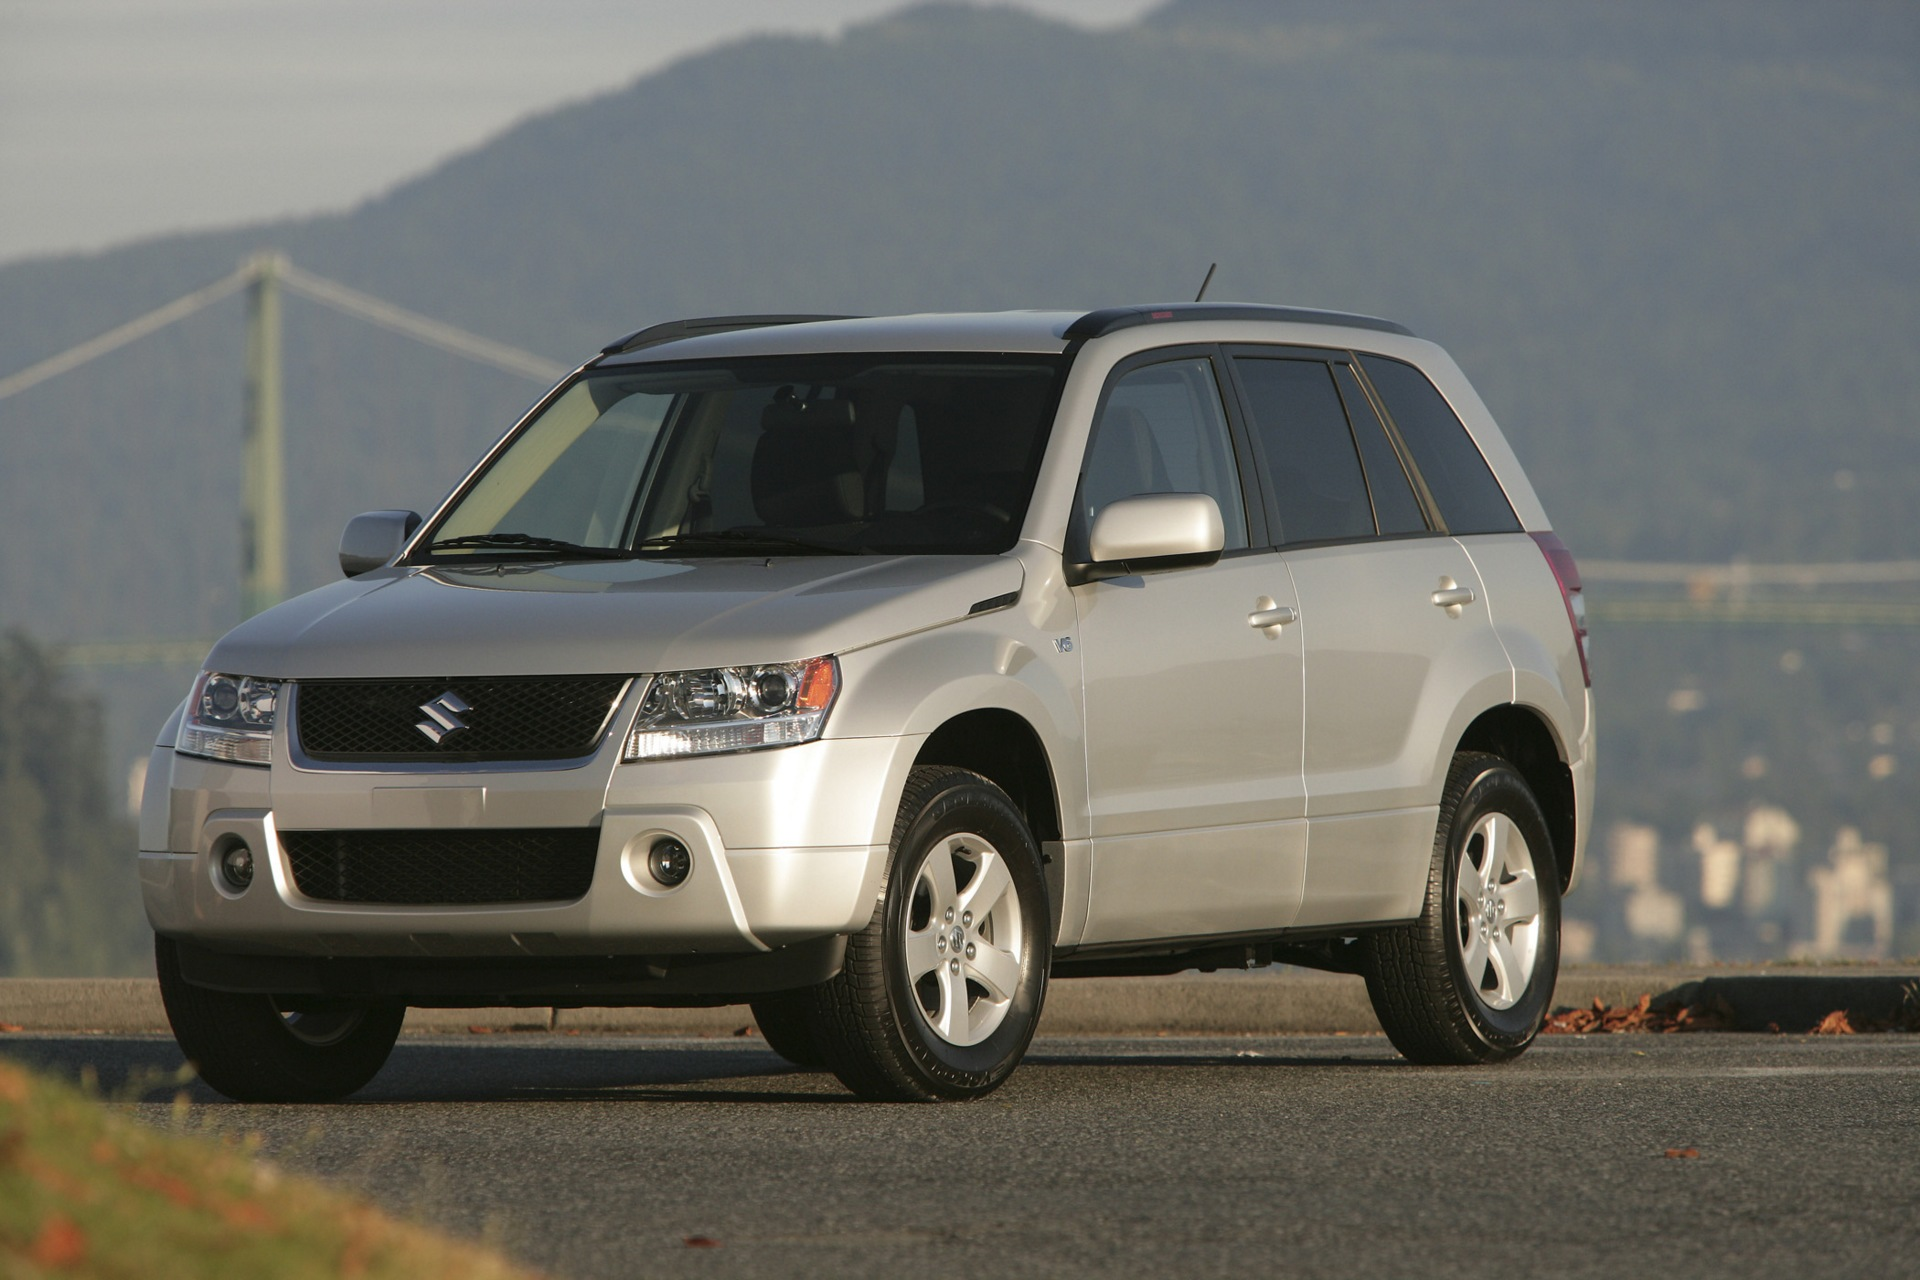 2008 Suzuki Grand Vitara News And Information